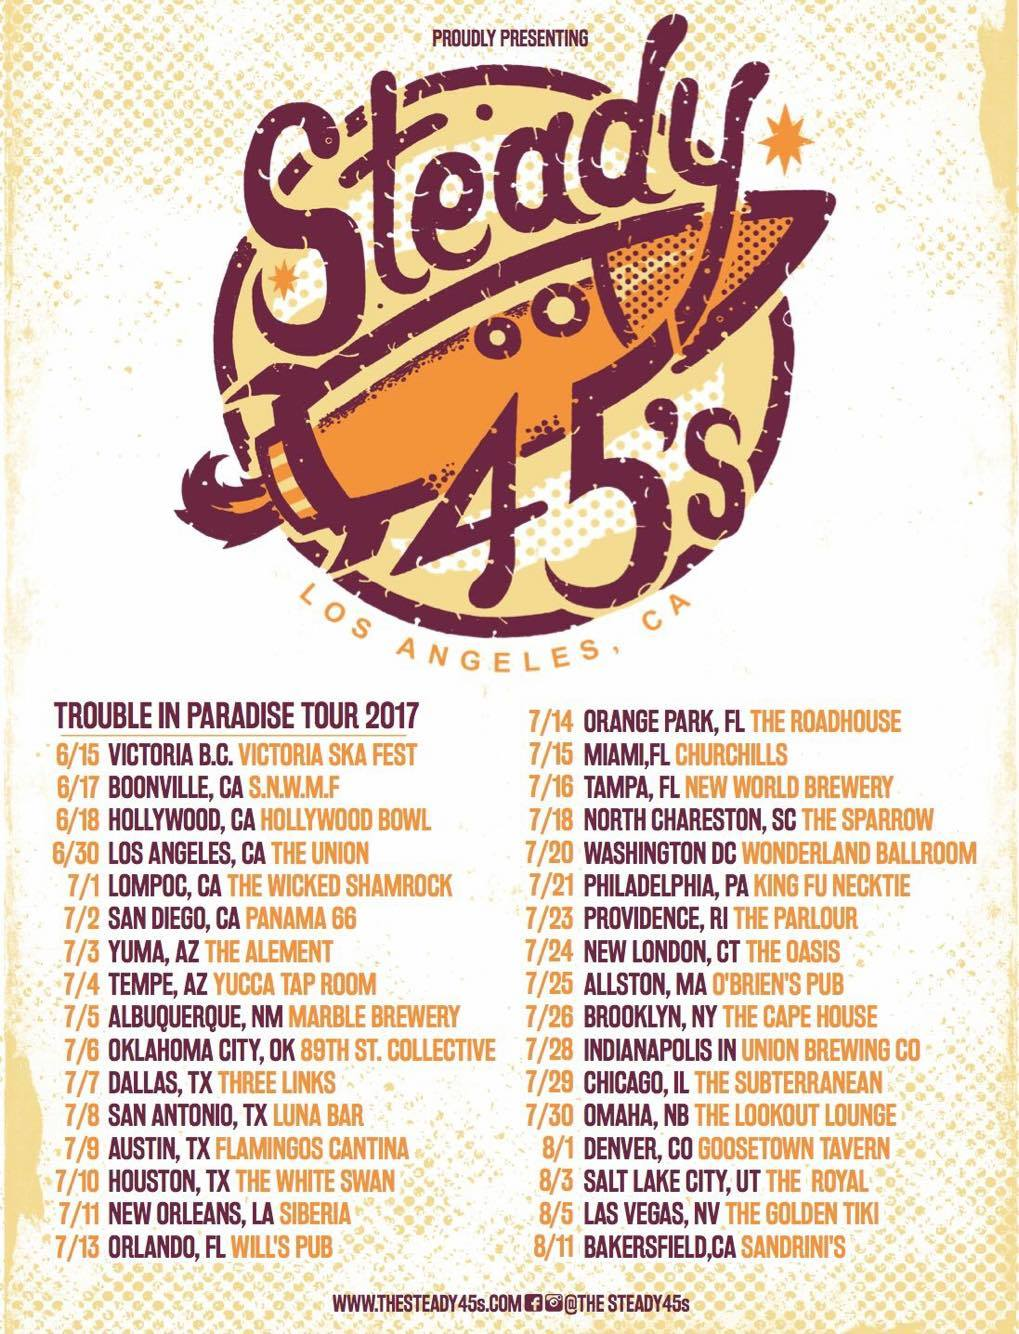 Poster for the Steady 45s 2017 Troublein Paradise Tour with dates